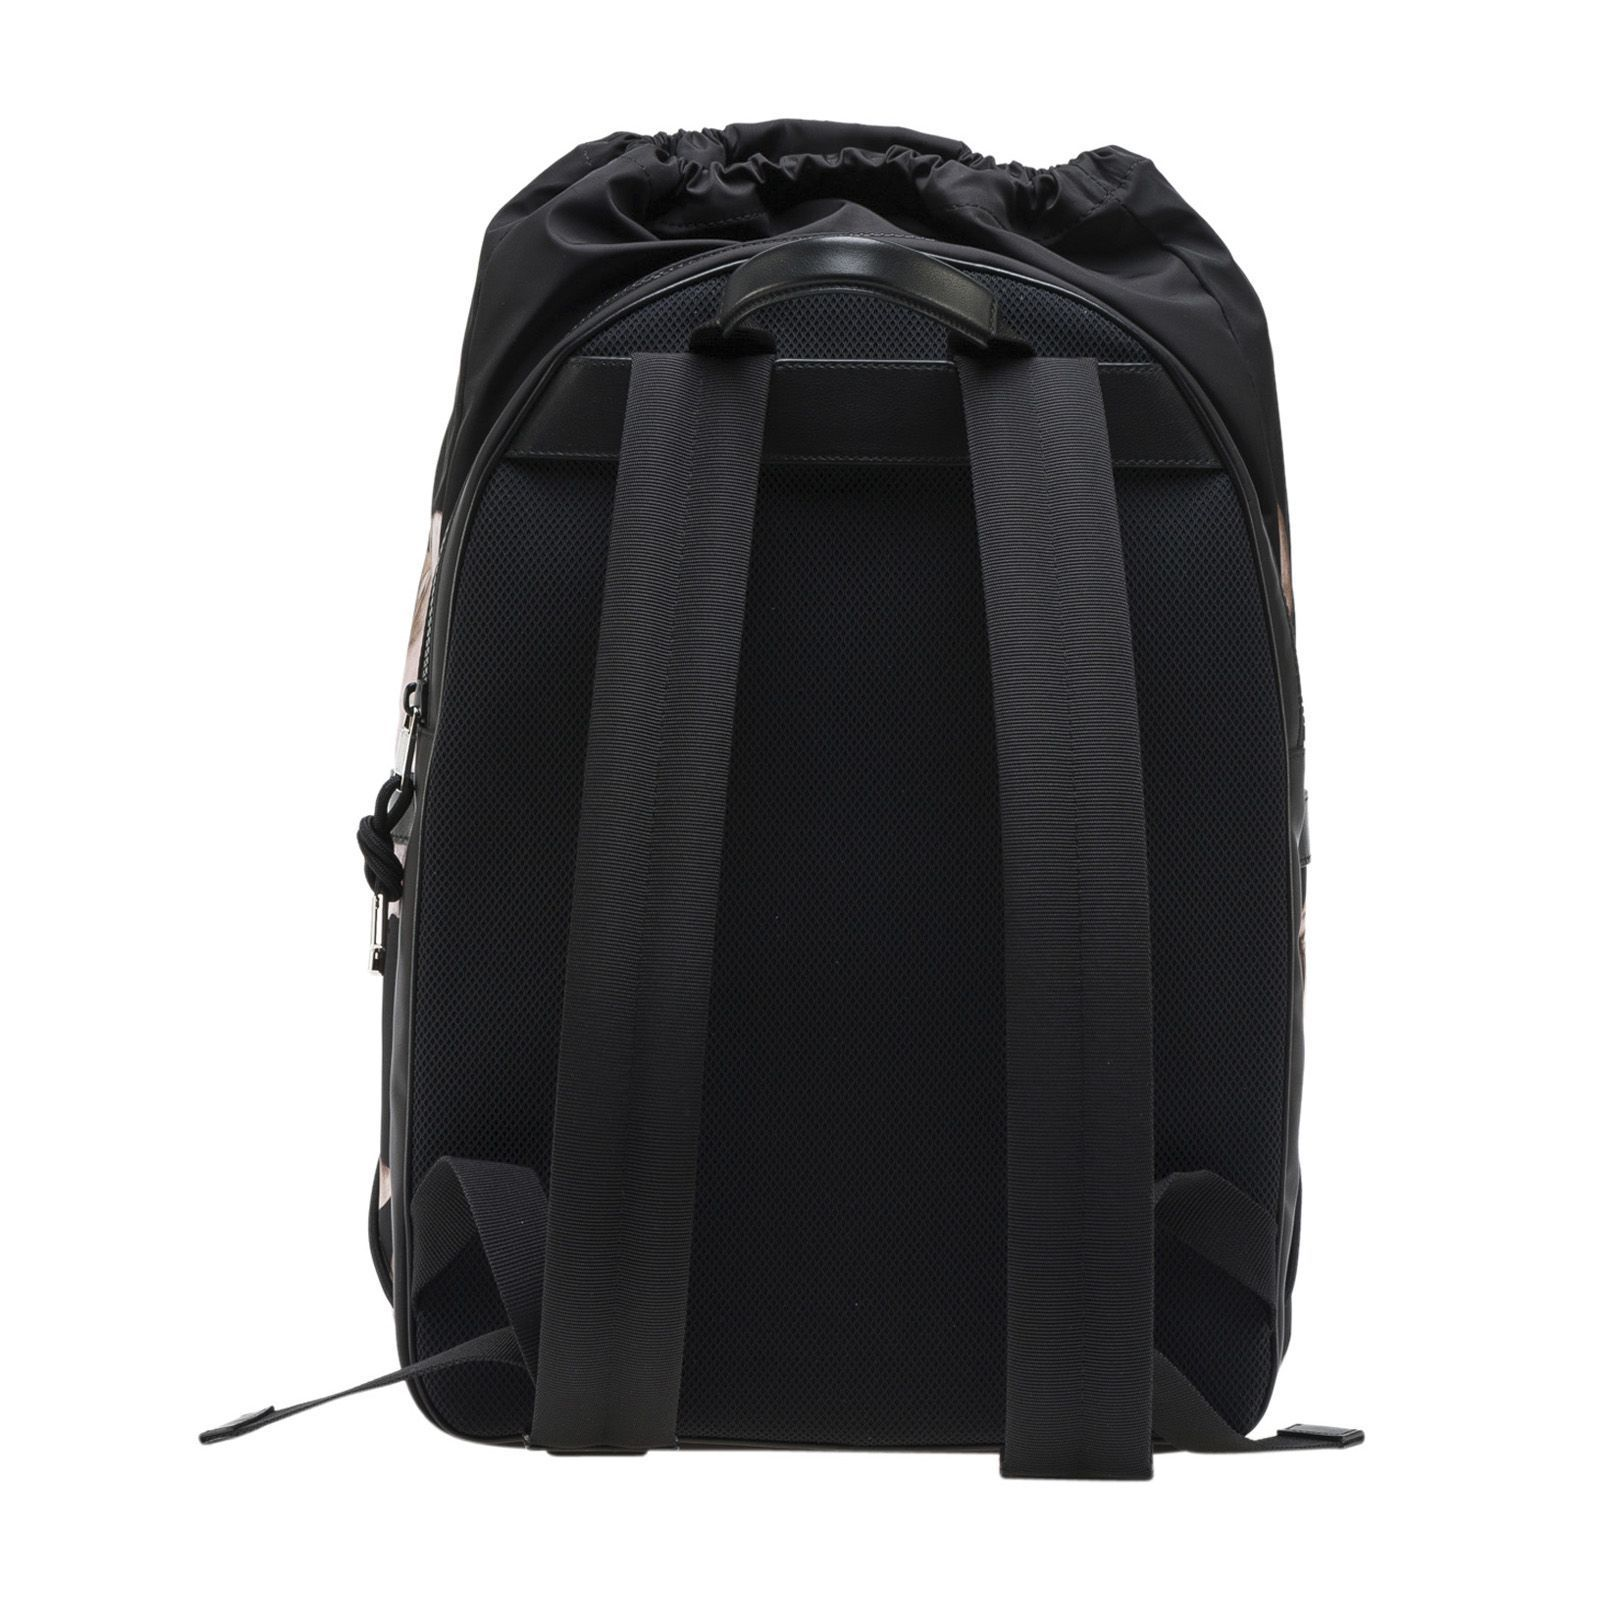 Mosh Pits Nylon Backpack バックパック